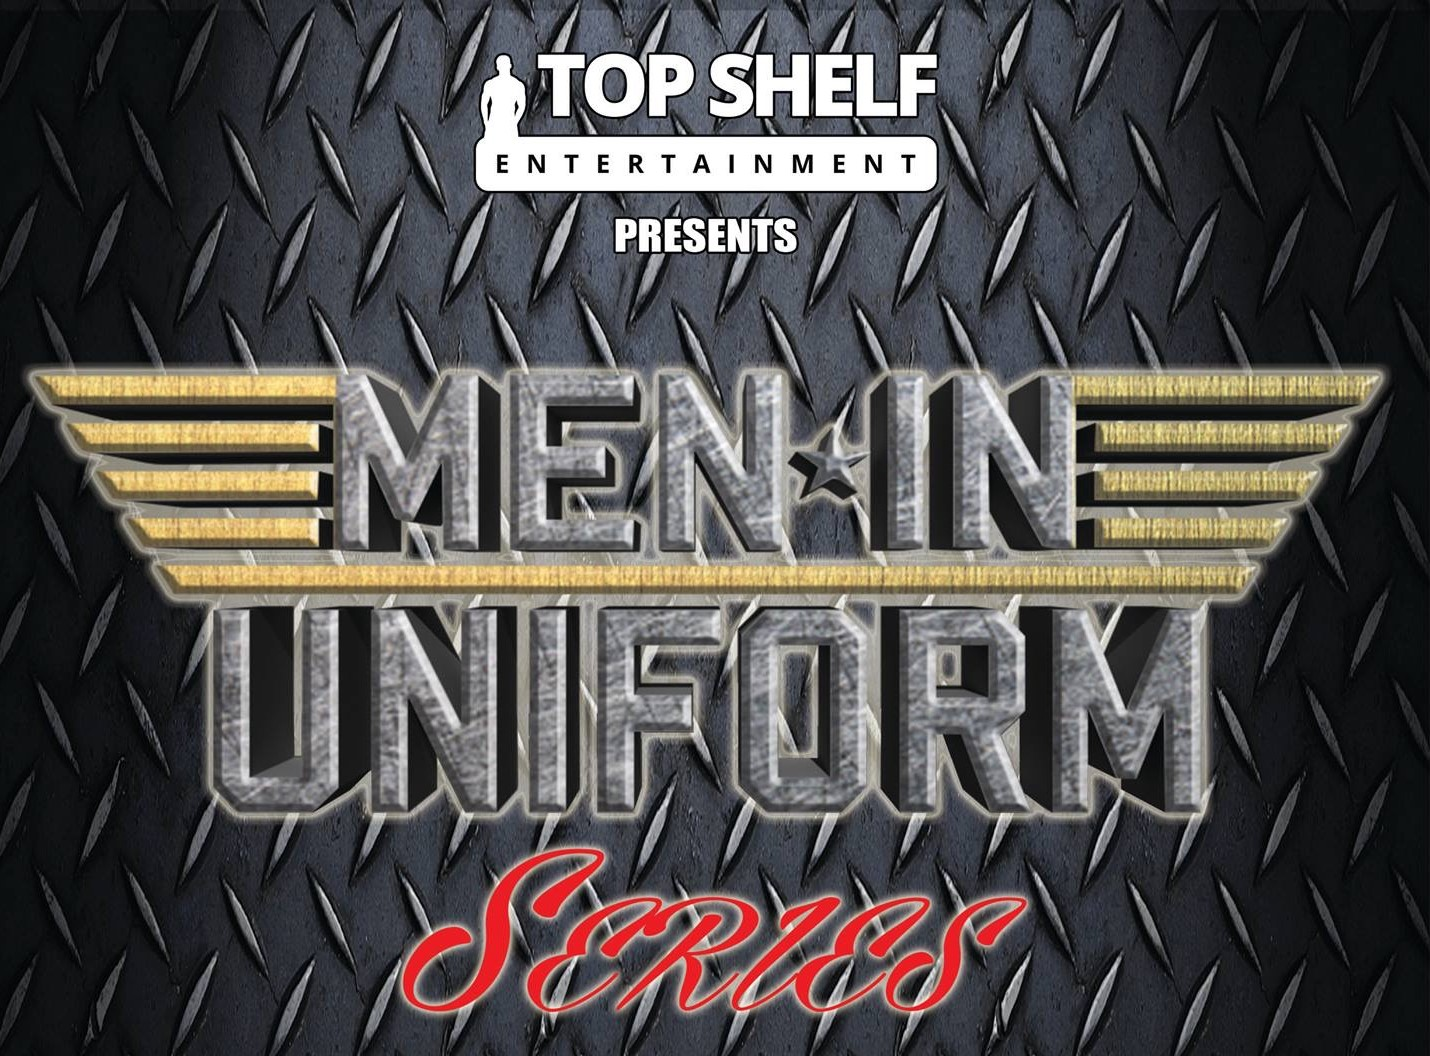 Tickets for Top Shelf: Men in Uniform in Fremantle from Ticketbooth